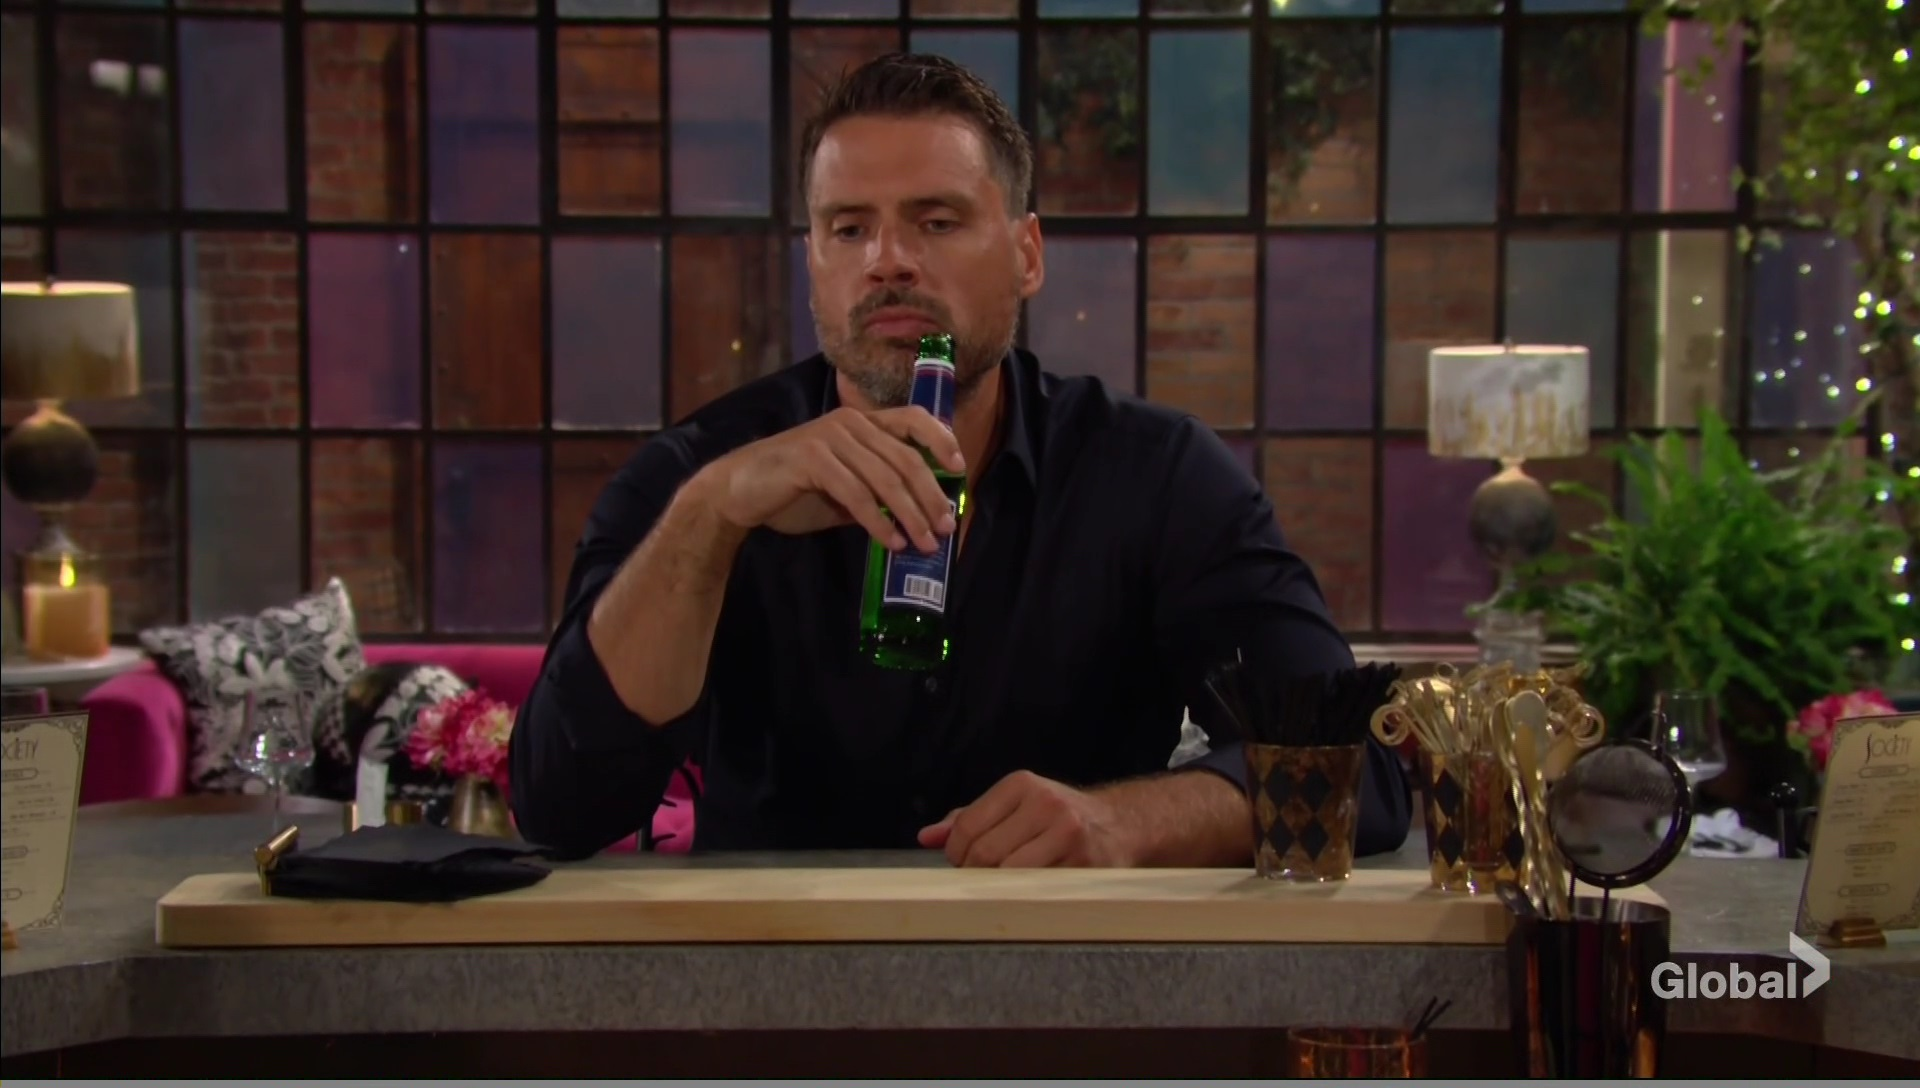 nick drinking society young restless